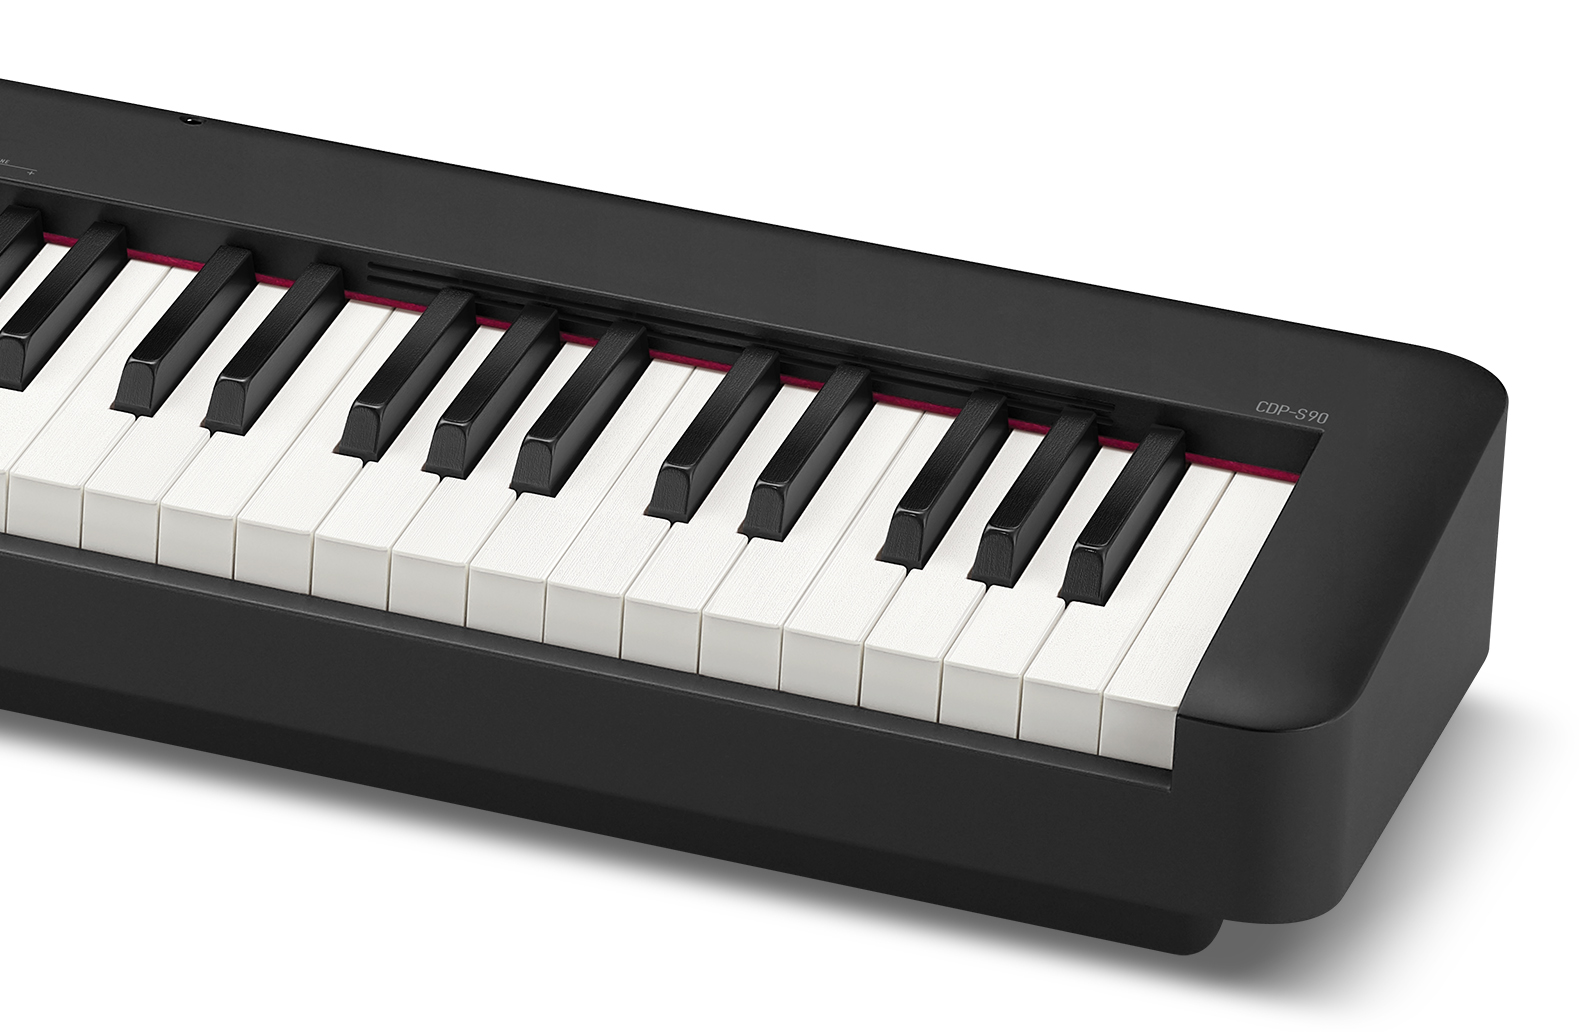 The CDP-S90 is the best digital piano for beginners in 2020. It's Scaled Hammer Action II Keyboard provides an ideal touch for the student pianist of any age and ability.